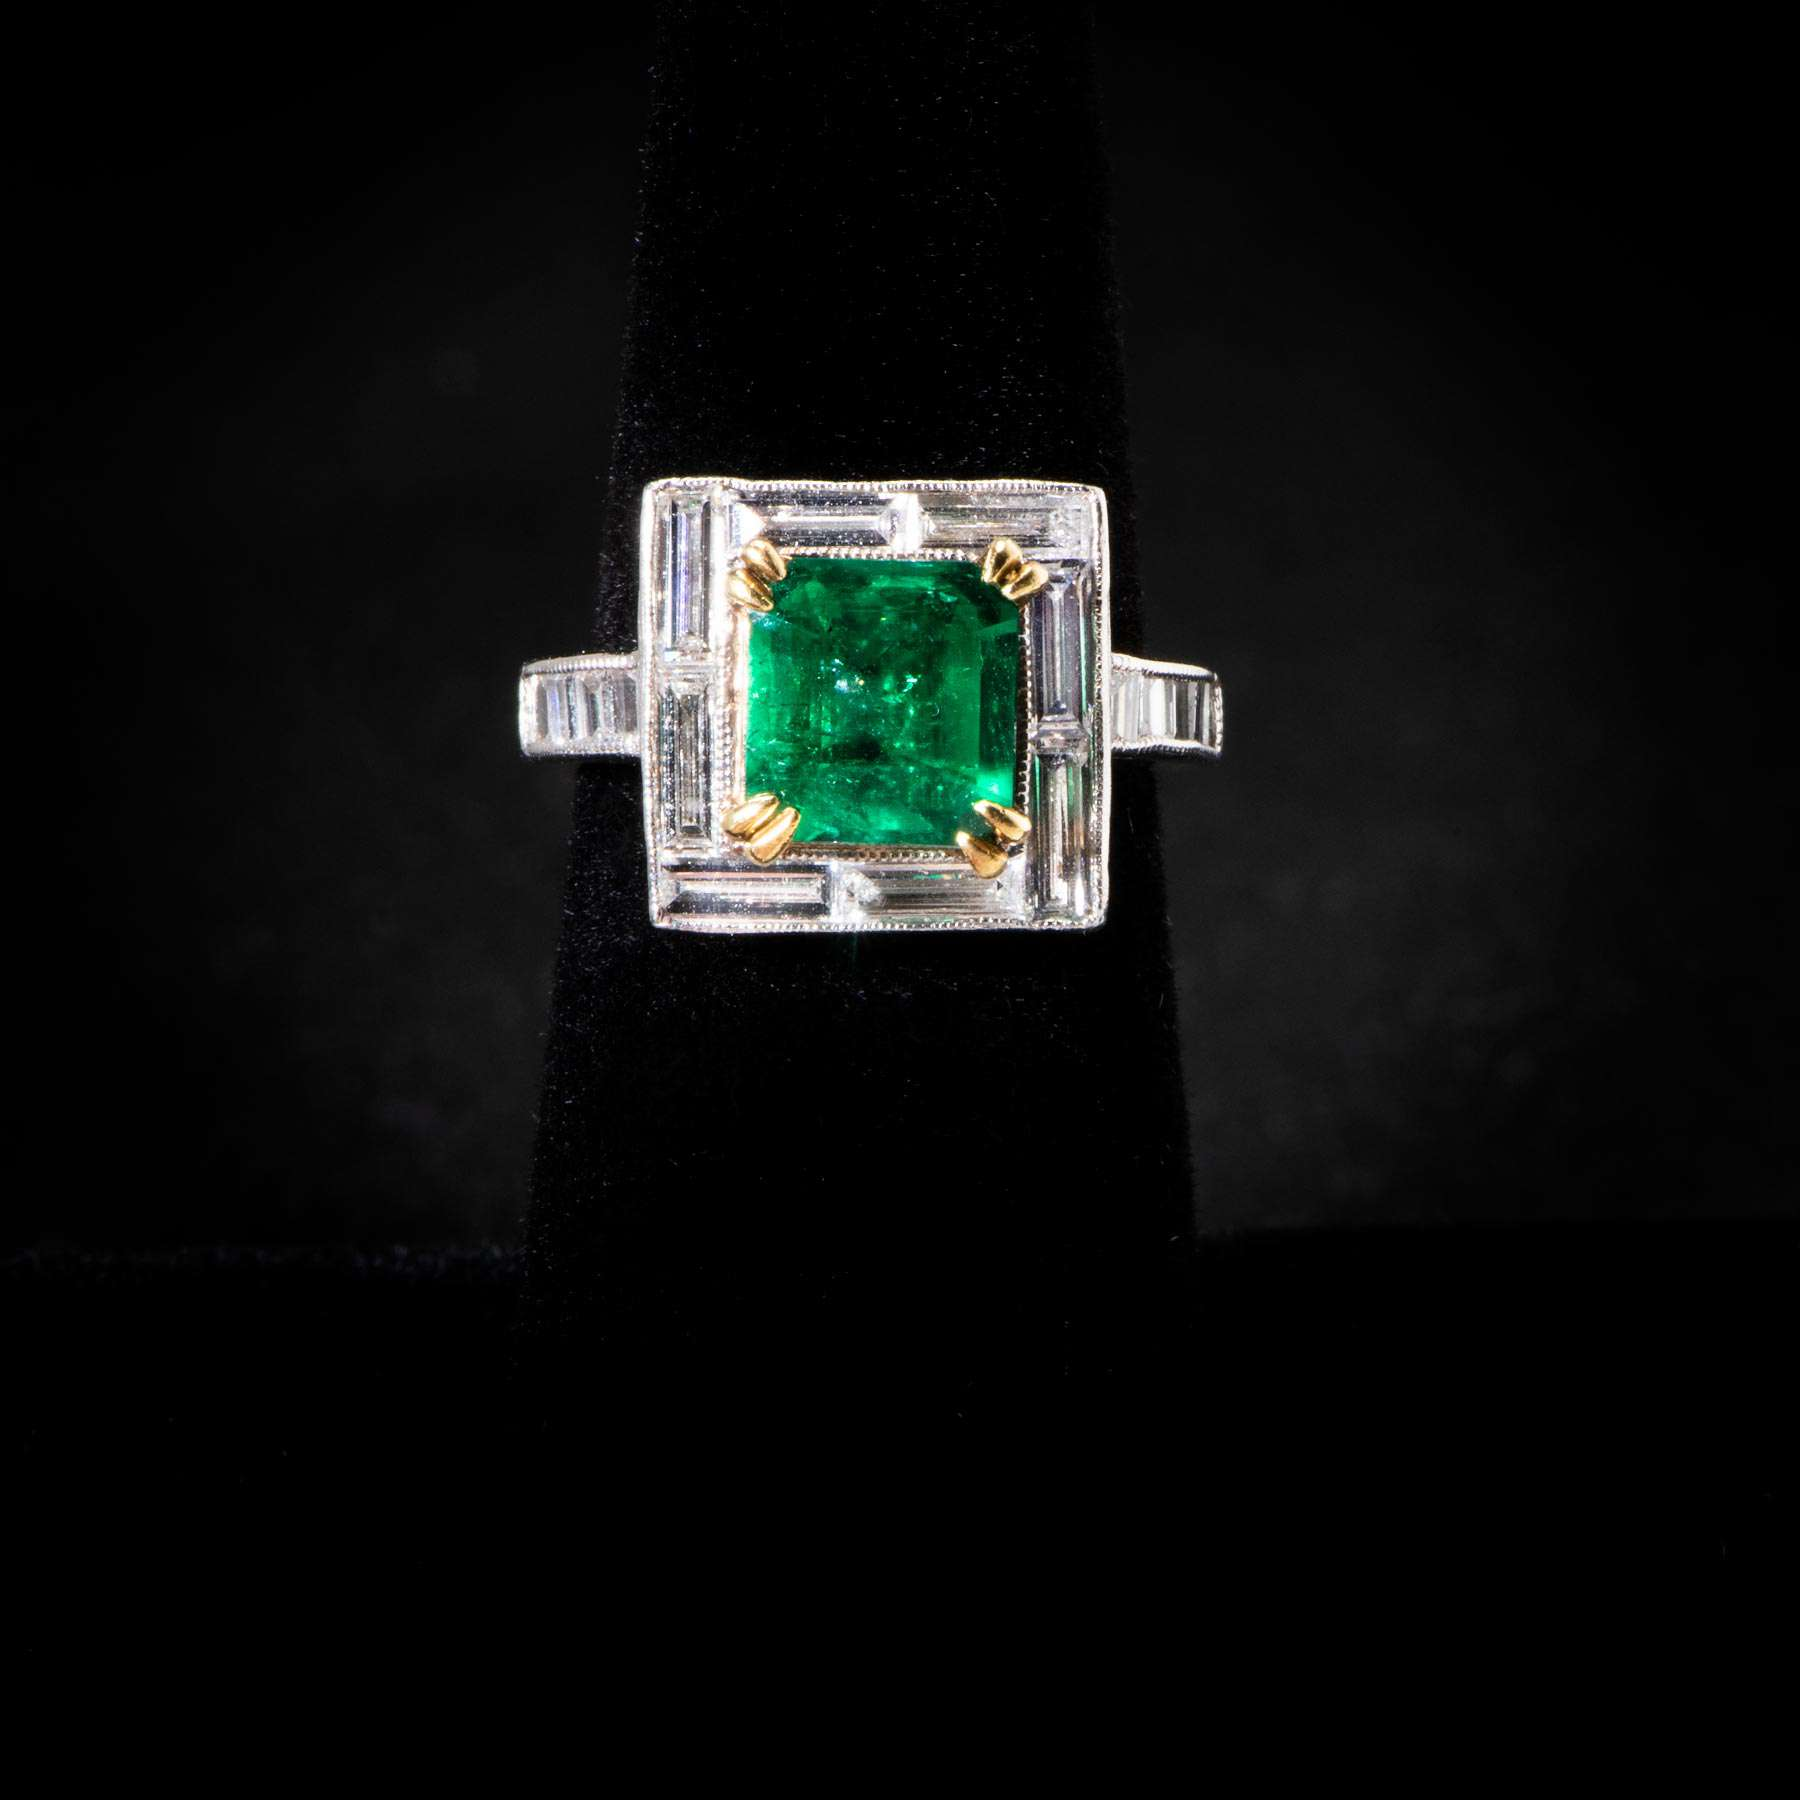 183-24BEXE, PLAT Ring W 2.8Cts Columbian Baguettes Emerald